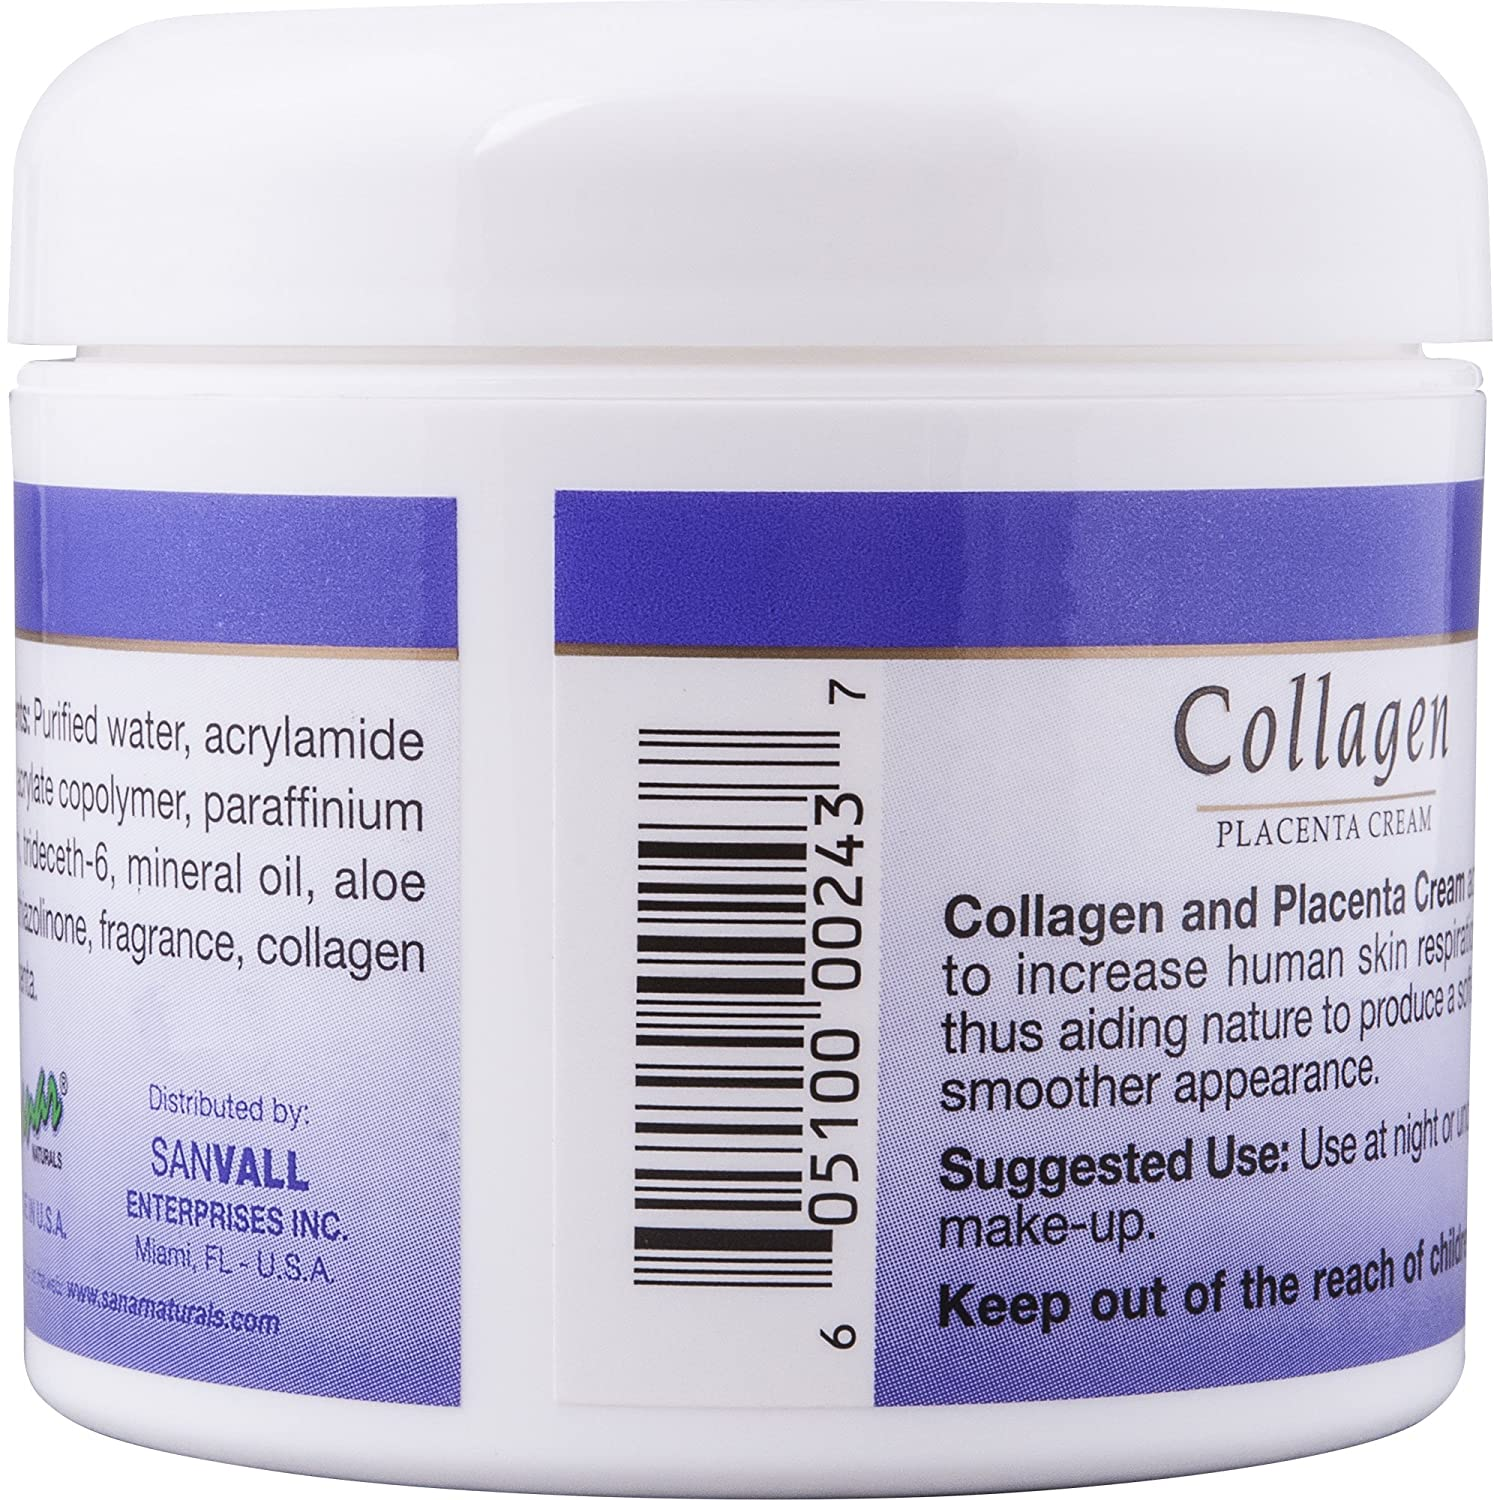 Amazon.com: Sanar Naturals Beauty Combo, Collagen Capsules 150 Count and Collagen Cream 4 Ounce - Capsulas y Crema de Colageno: Health & Personal Care